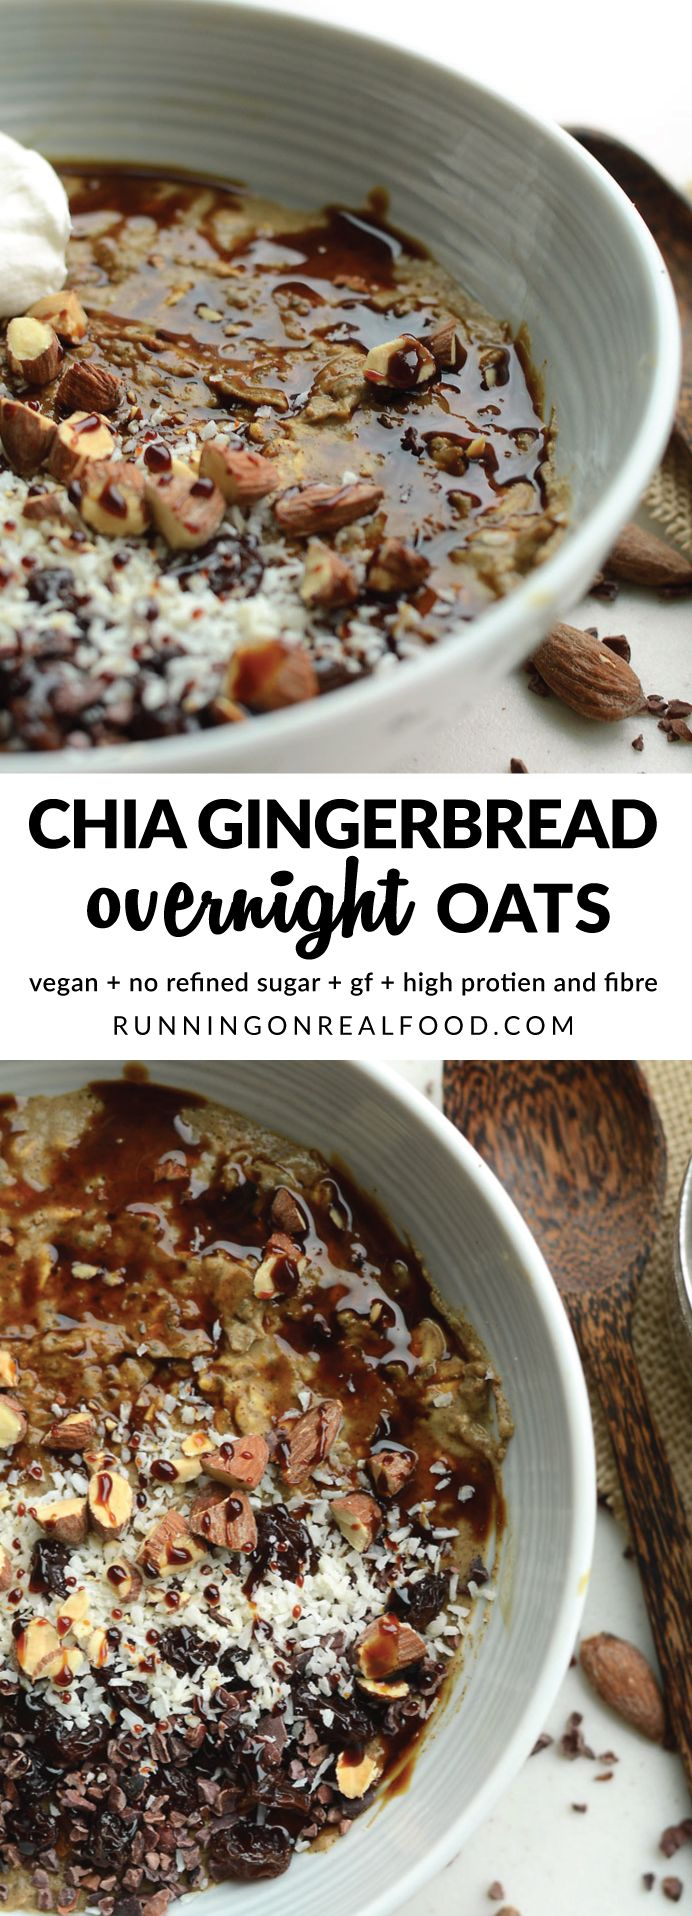 These incredible gingerbread overnight oats with protein and chia seed taste like gingerbread cookie dough! High in fibre and plant-based protein, healthy fats from chia seeds and energizing carbohydrates from oats and molasses. If you love gingerbread, you will love these overnight oats! Vegan, gluten-free, no refined sugar.  full recipe here: http://runningonrealfood.com/gingerbread-overnight-oats/